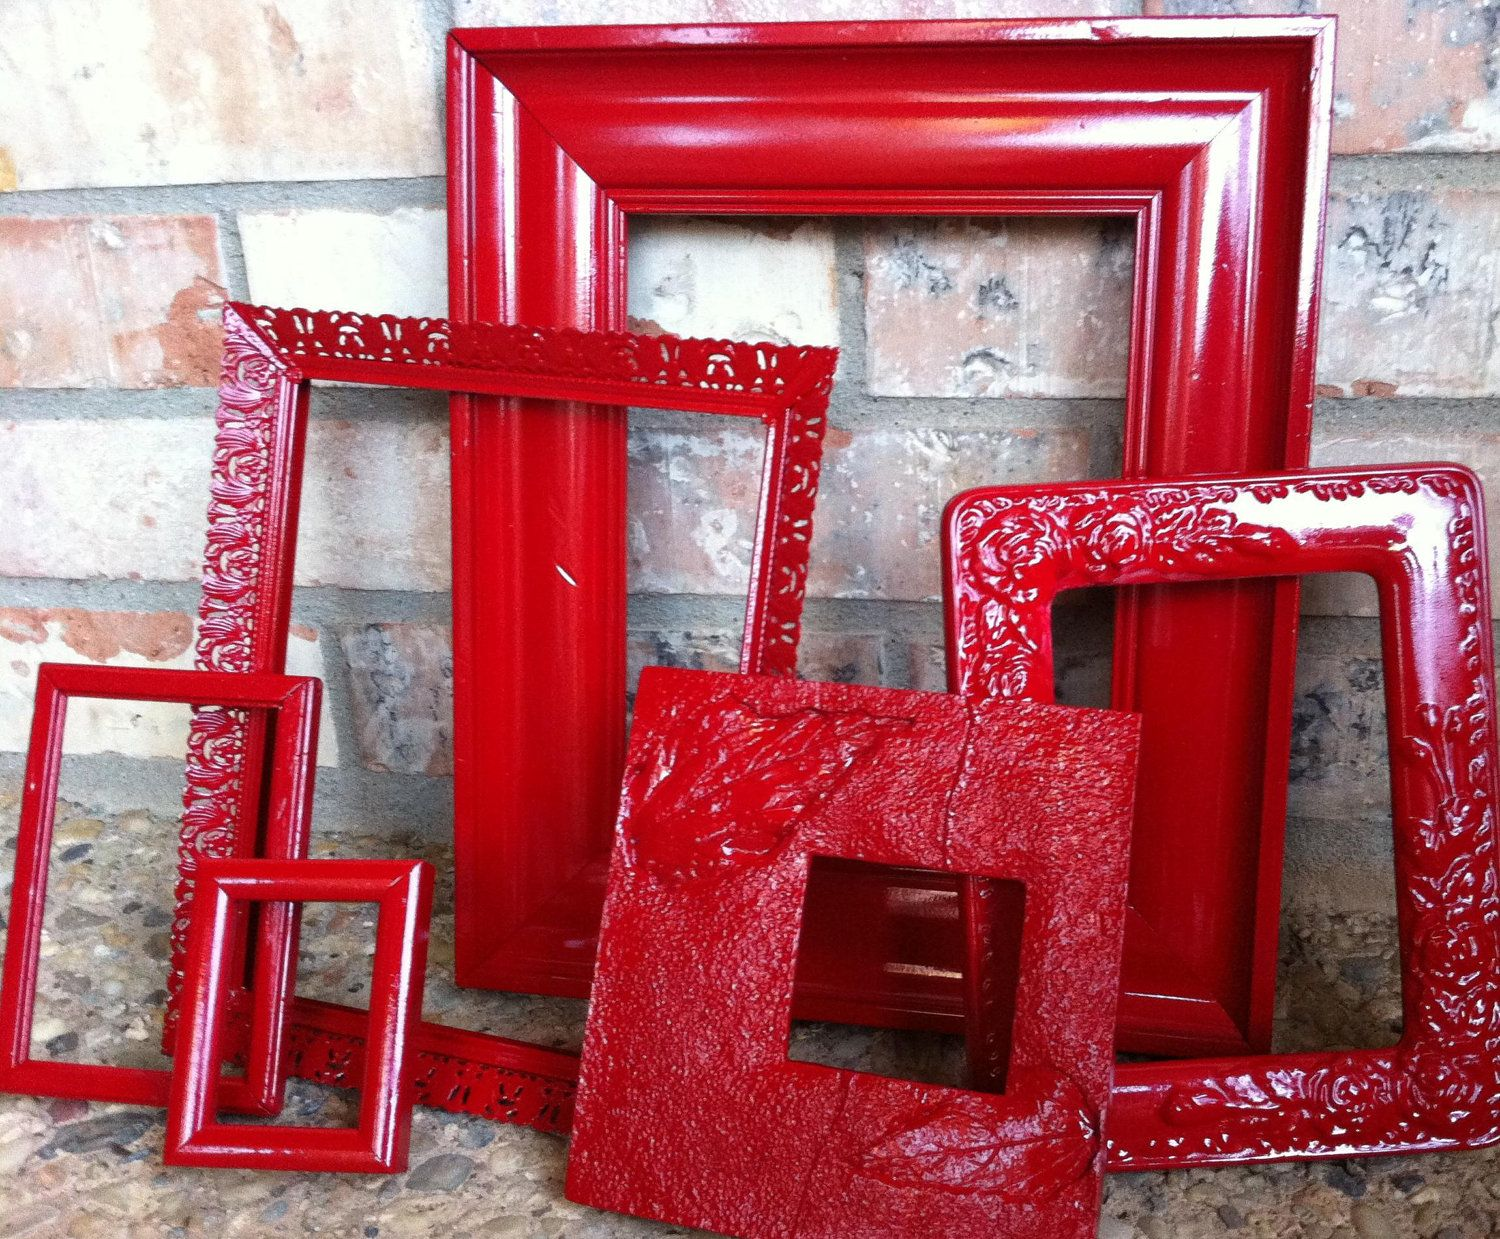 upcycled frames vintage red frames unique home decor alice in wonderland